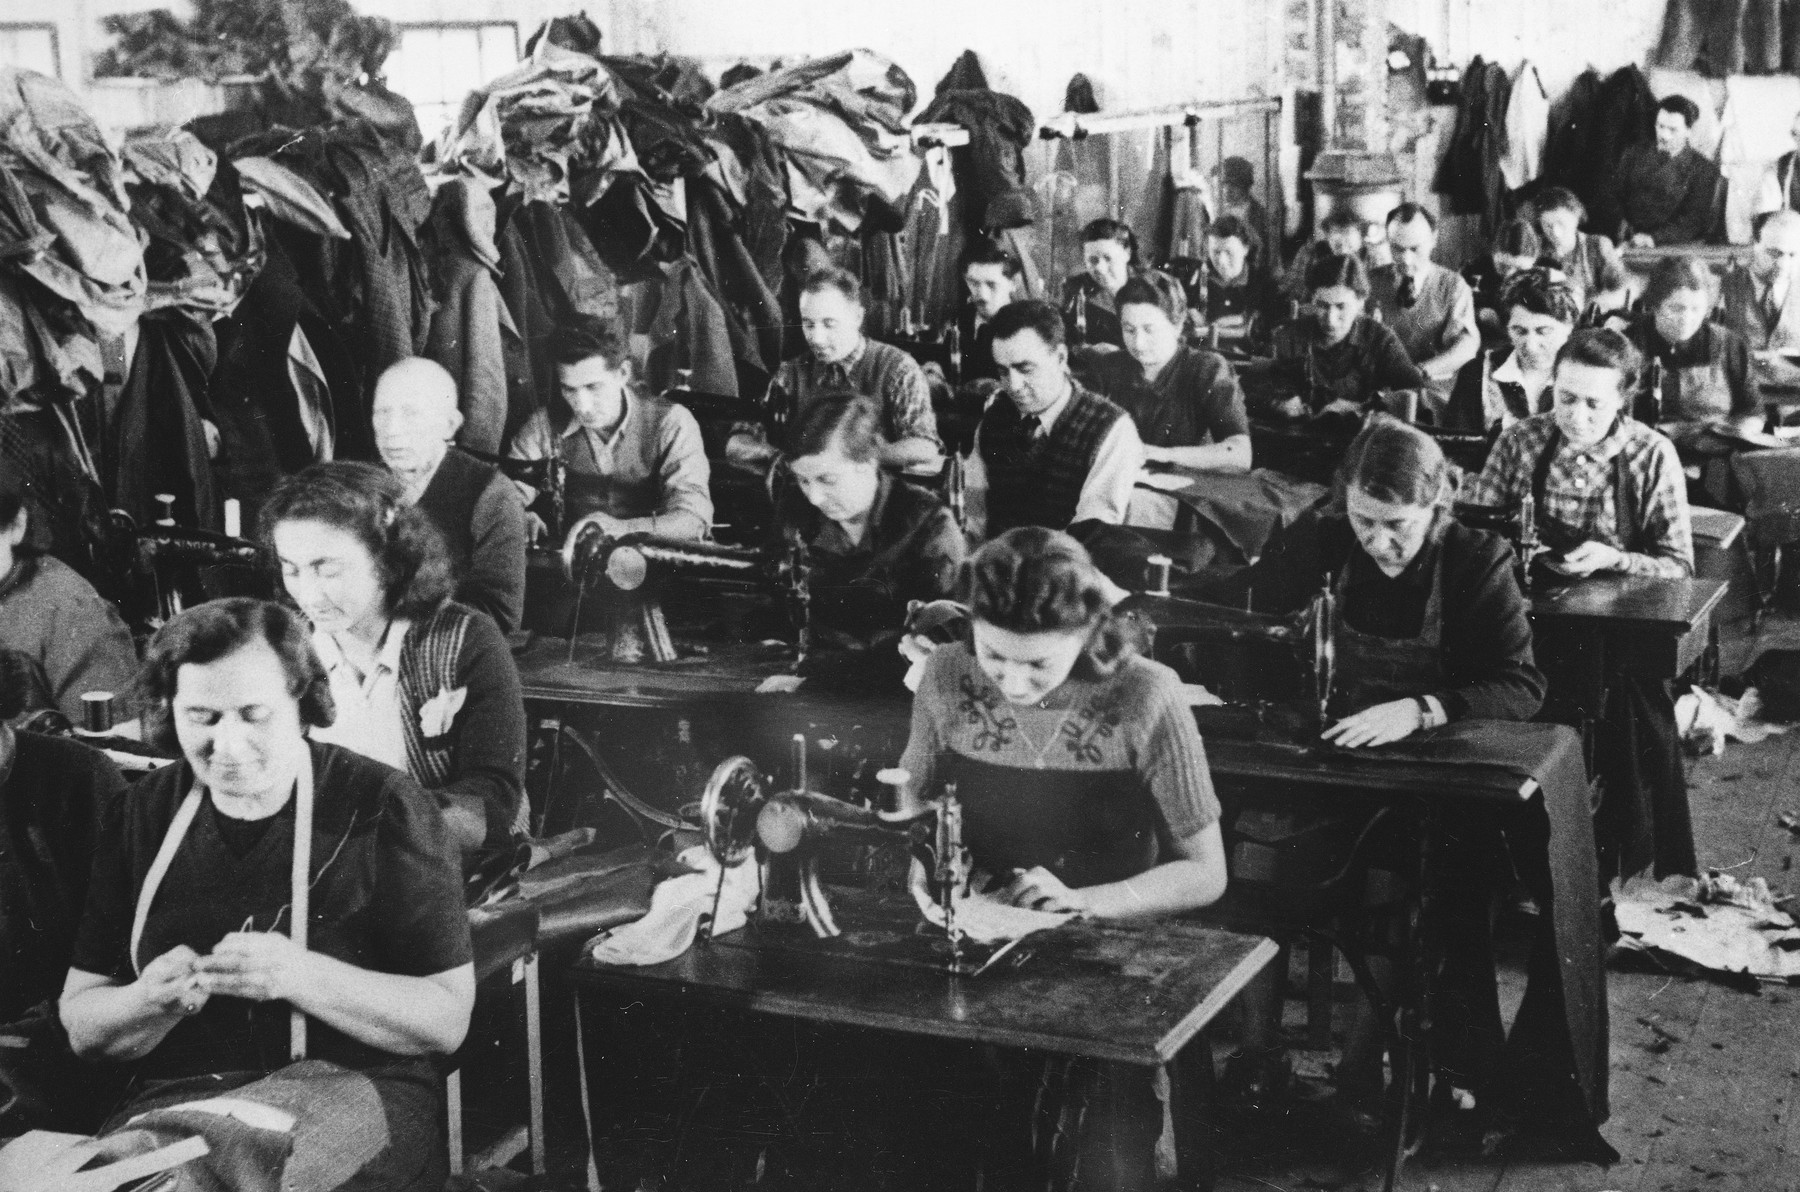 Prisoners operate sewing machines at a Slovak labor camp.